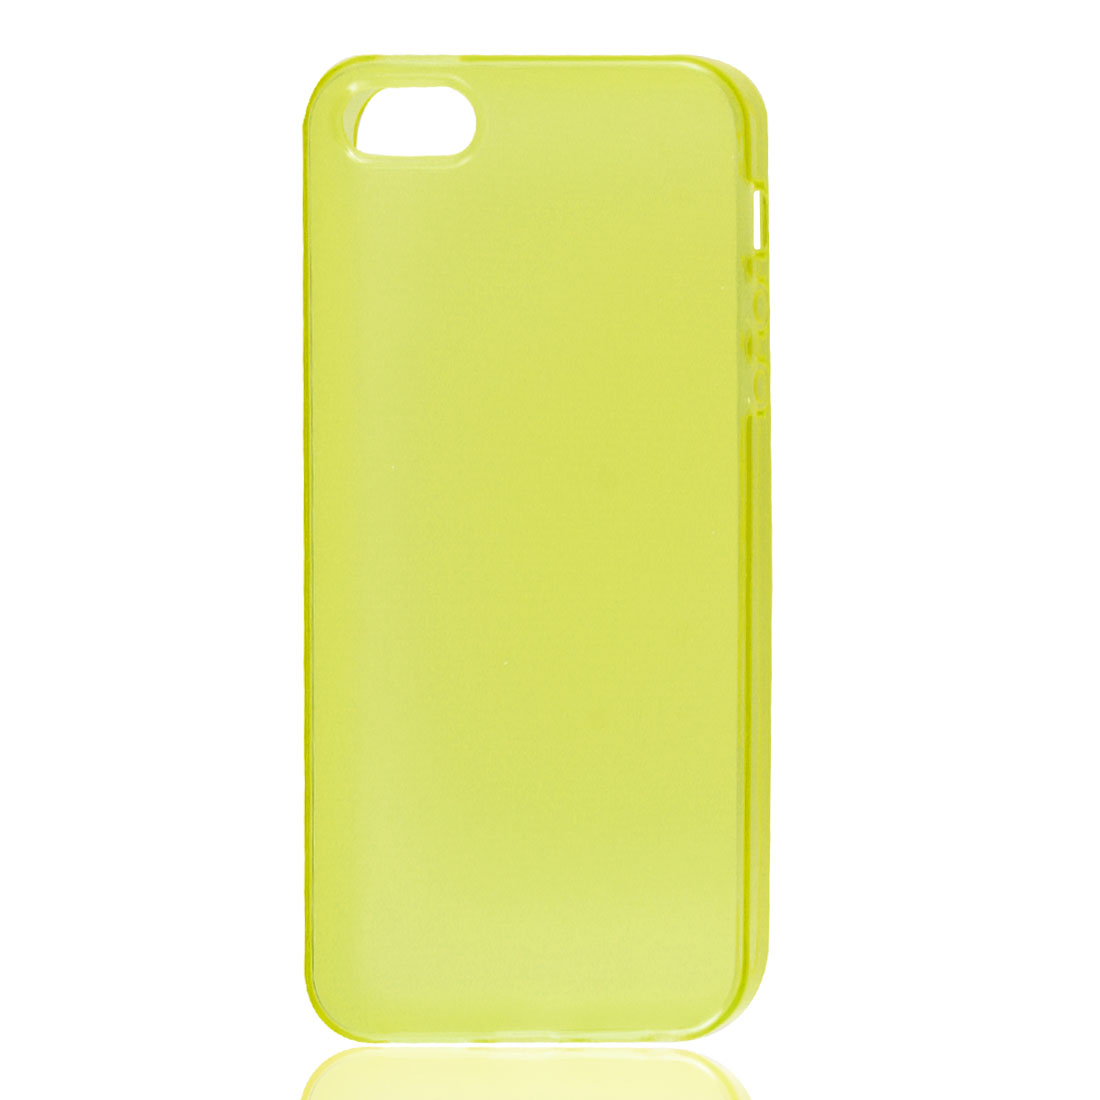 Yellow Soft Plastic TPU Protective Case Skin Cover for iPhone 5 5G